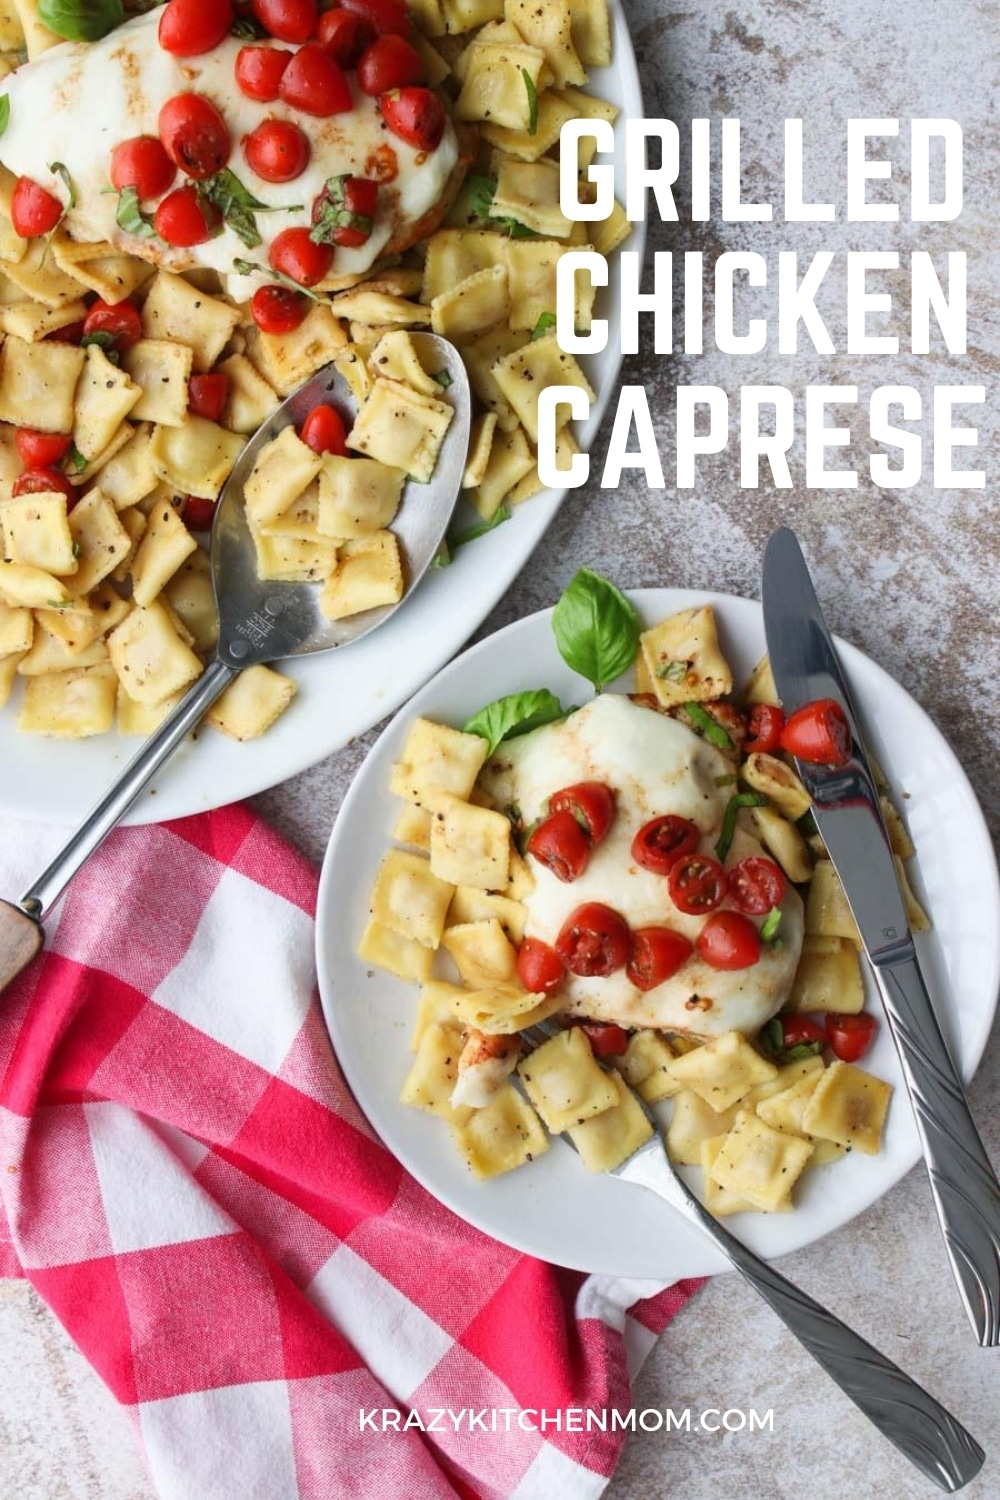 Fire up the grill for tender, juicy, flavor-packed grilled chicken topped with mozzarella cheese, fresh tomatoes, aromatic basil, olive oil, and balsamic vinegar.  via @krazykitchenmom